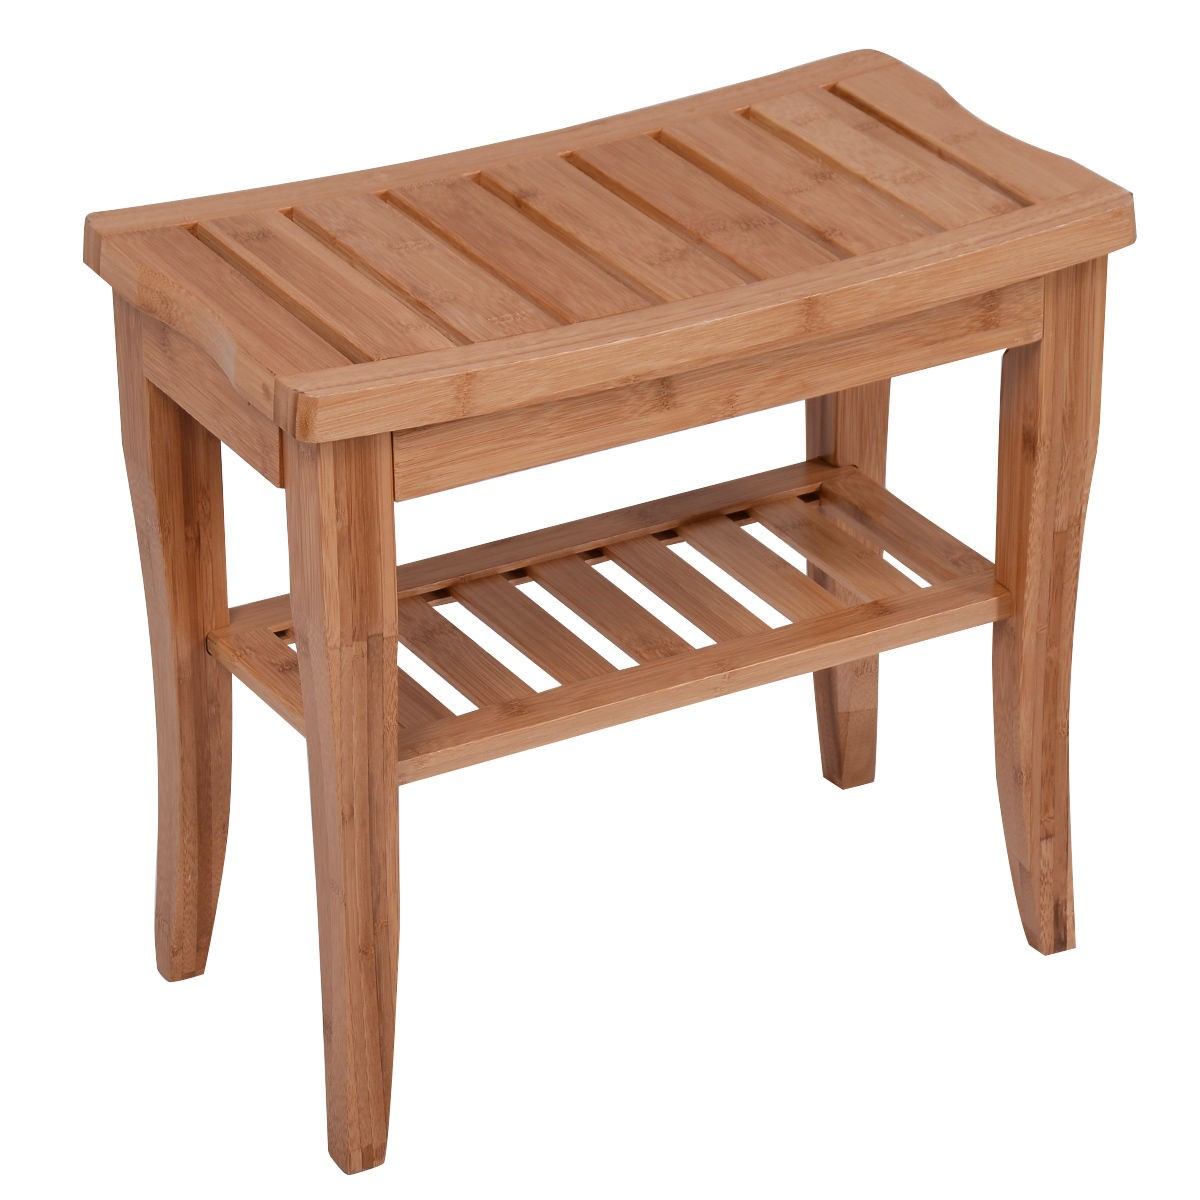 Wood Medical Spa Storage Bamboo Shower Bench Safety Bath Seat Chair Stool Salon Ebay